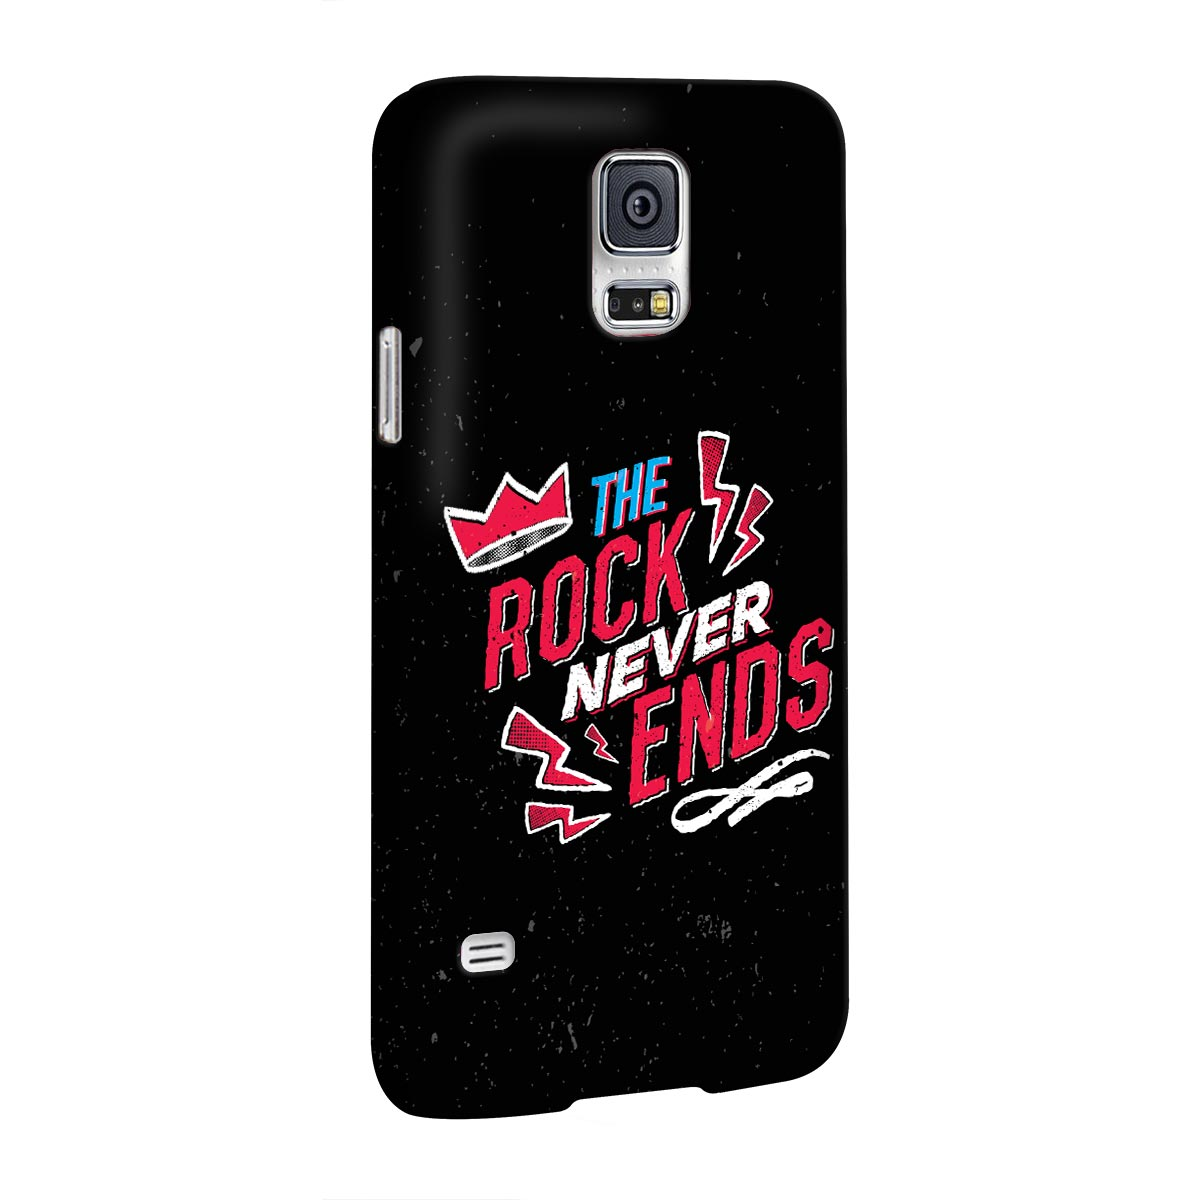 Capa para Samsung Galaxy S5 89FM A Rádio Rock 30 Anos The Rock Never Ends